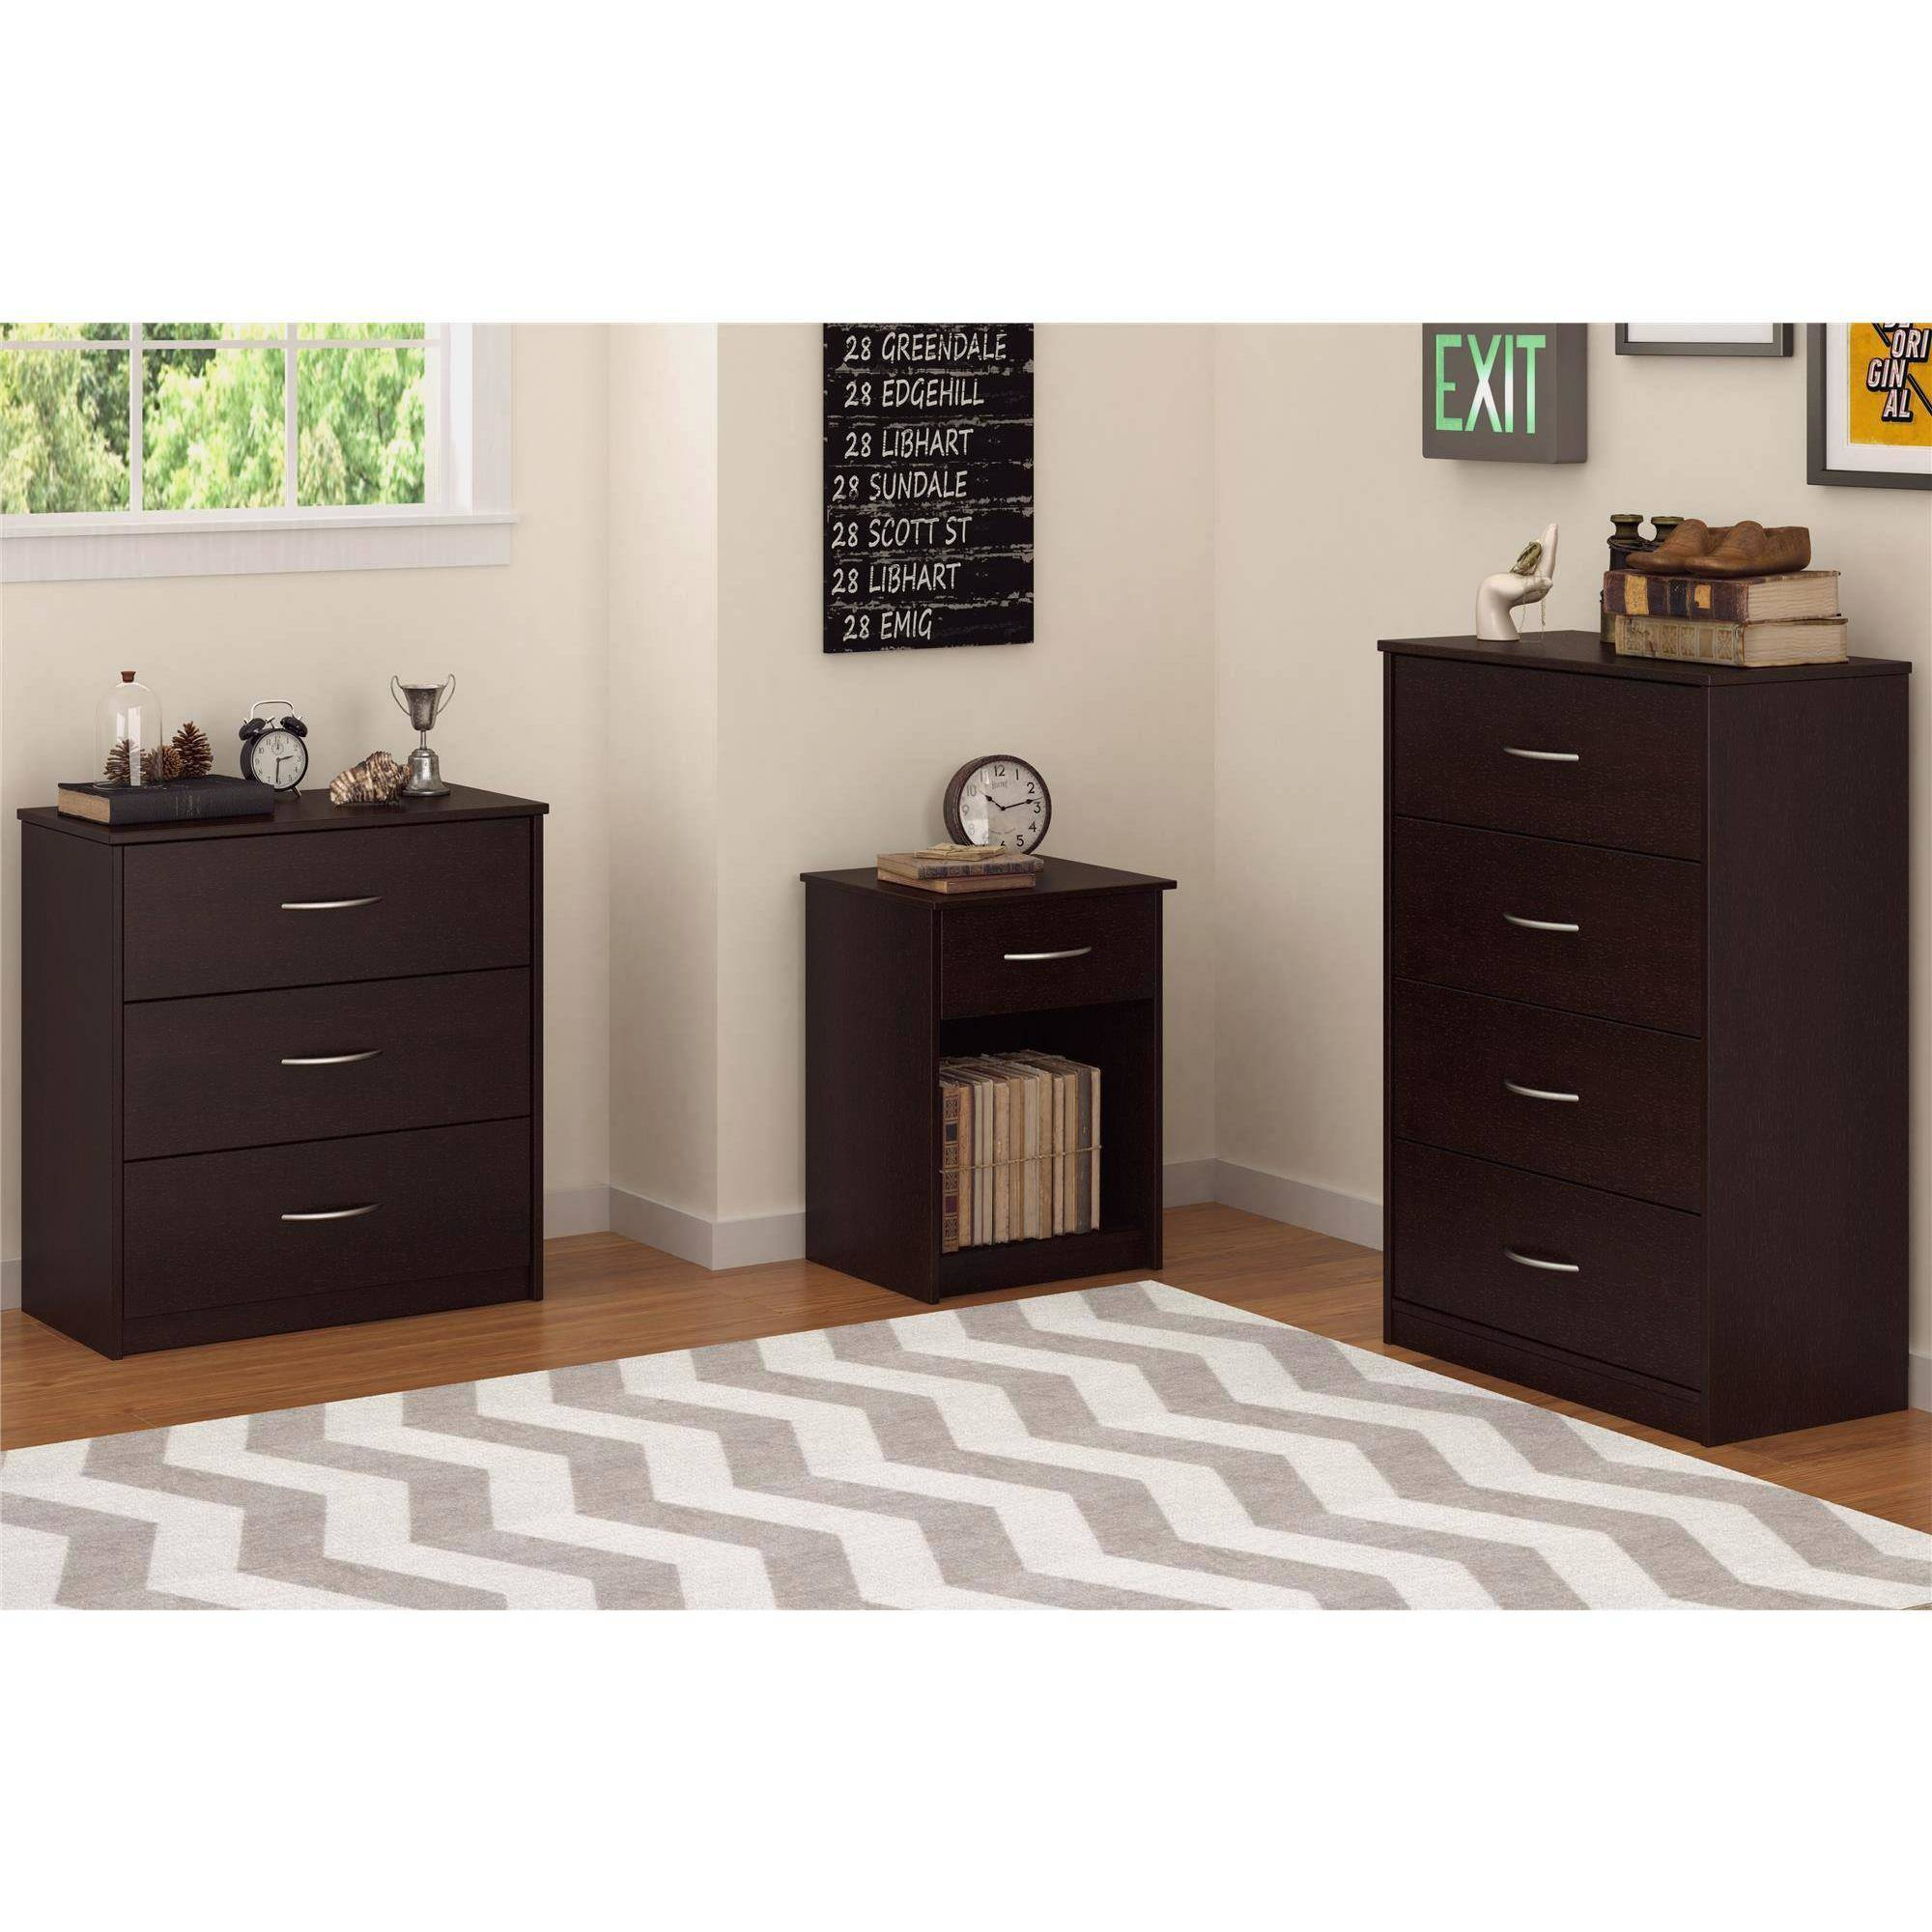 3 Drawer Dresser Chest Bedroom Storage Drawers Furniture Chest Espresso  Decor